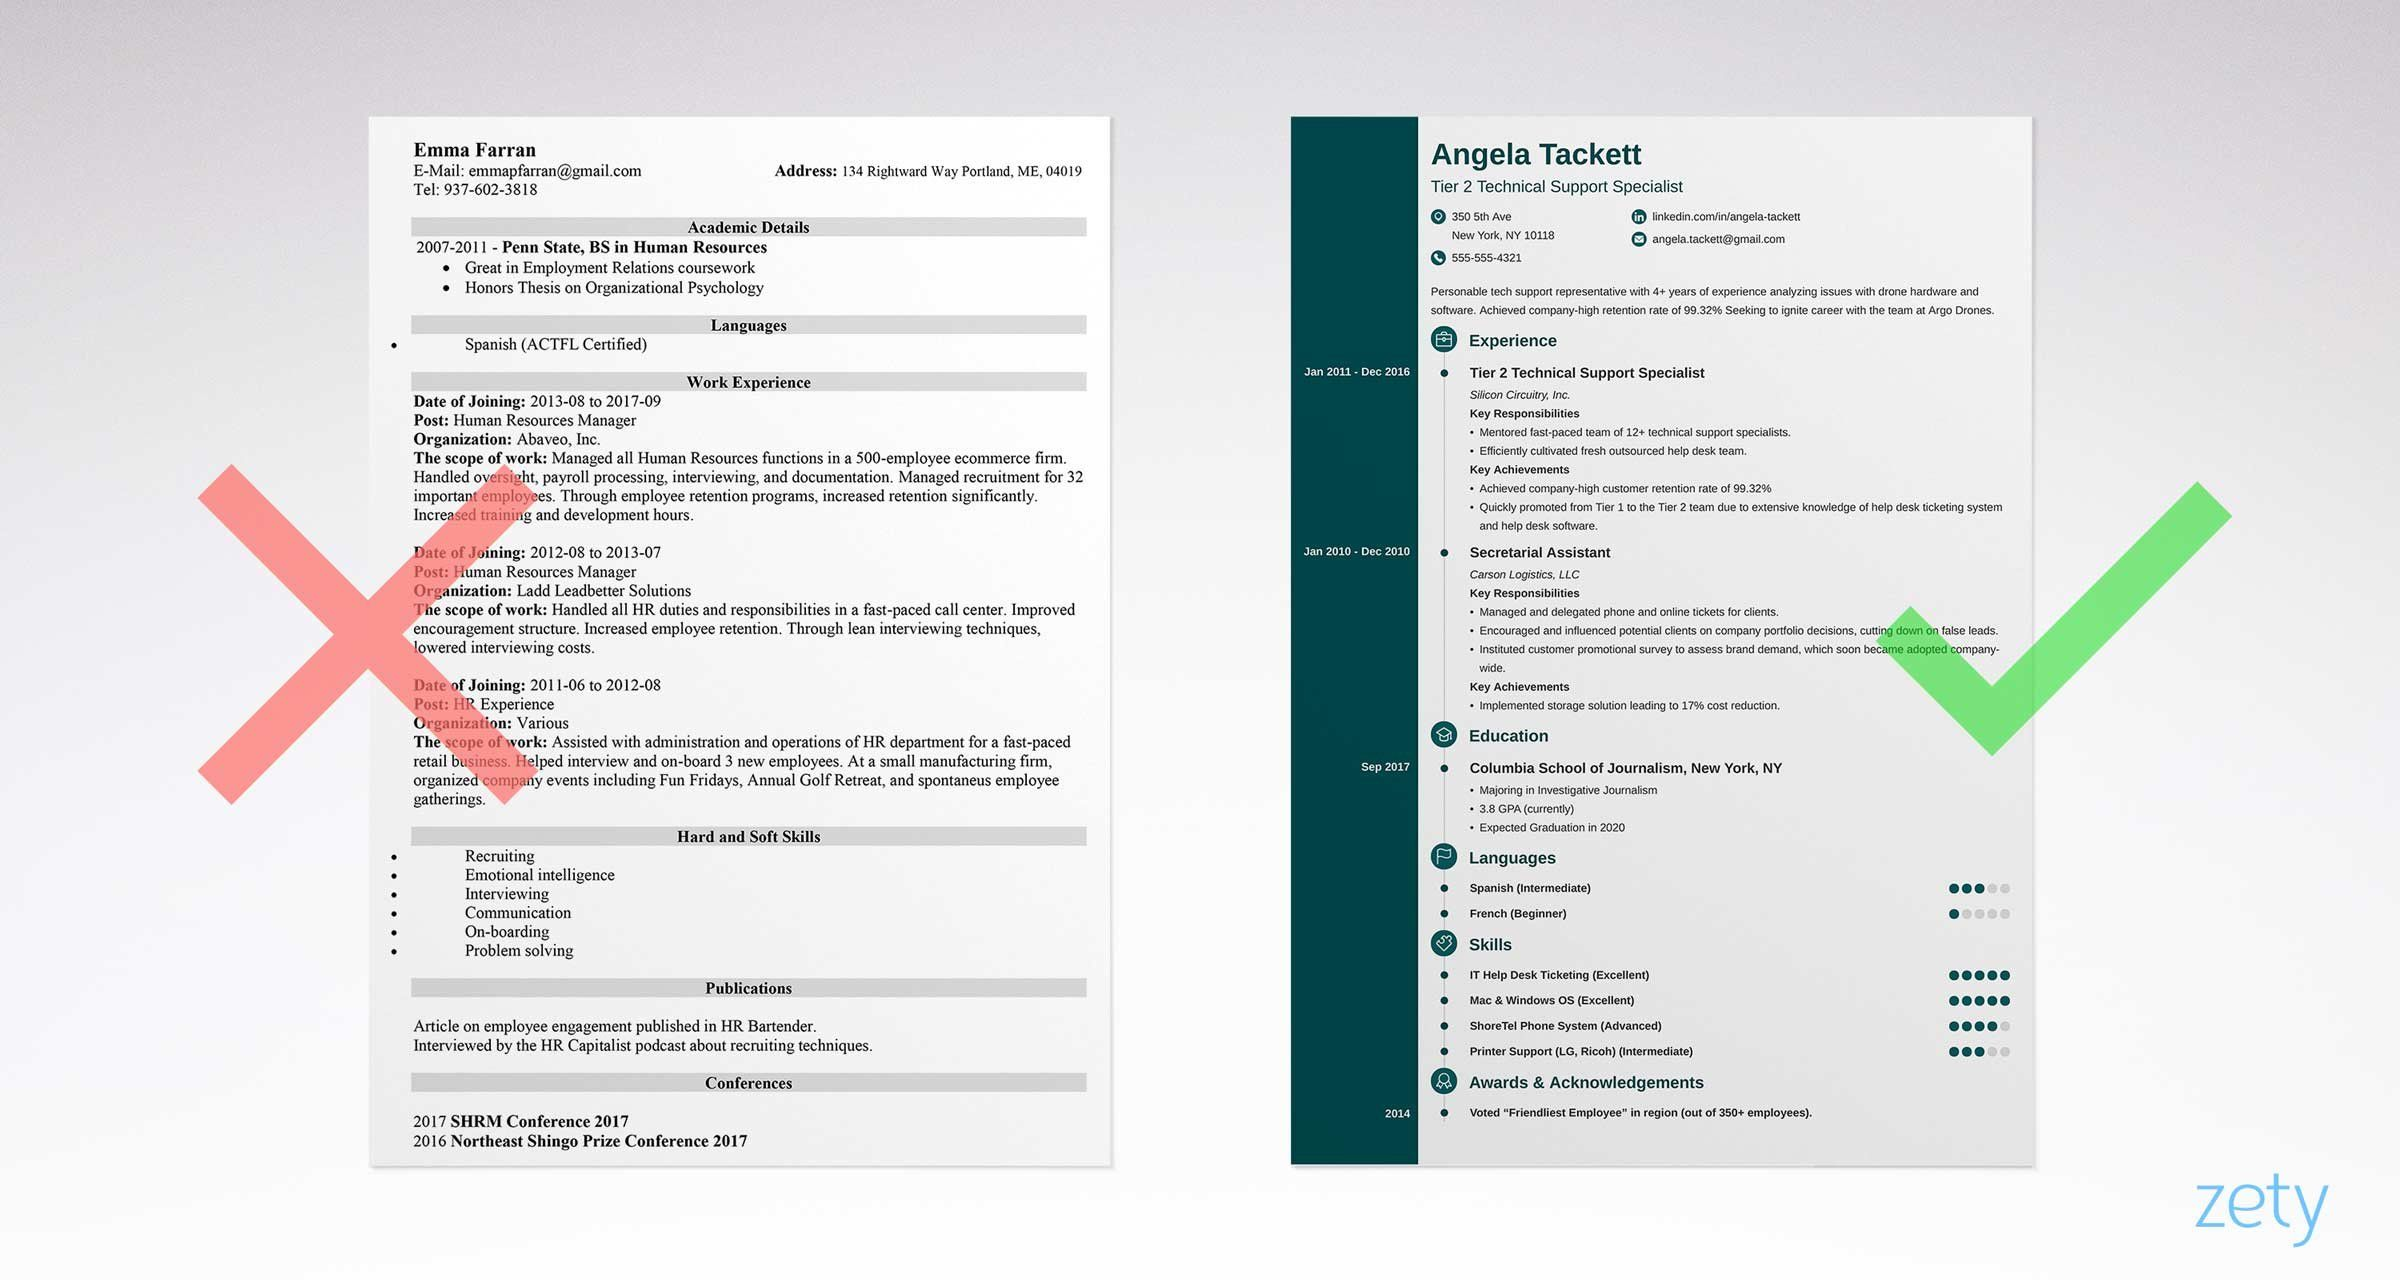 cv template zety resume format simple design logistics associate incident coordinator Resume Zety Resume Template Download